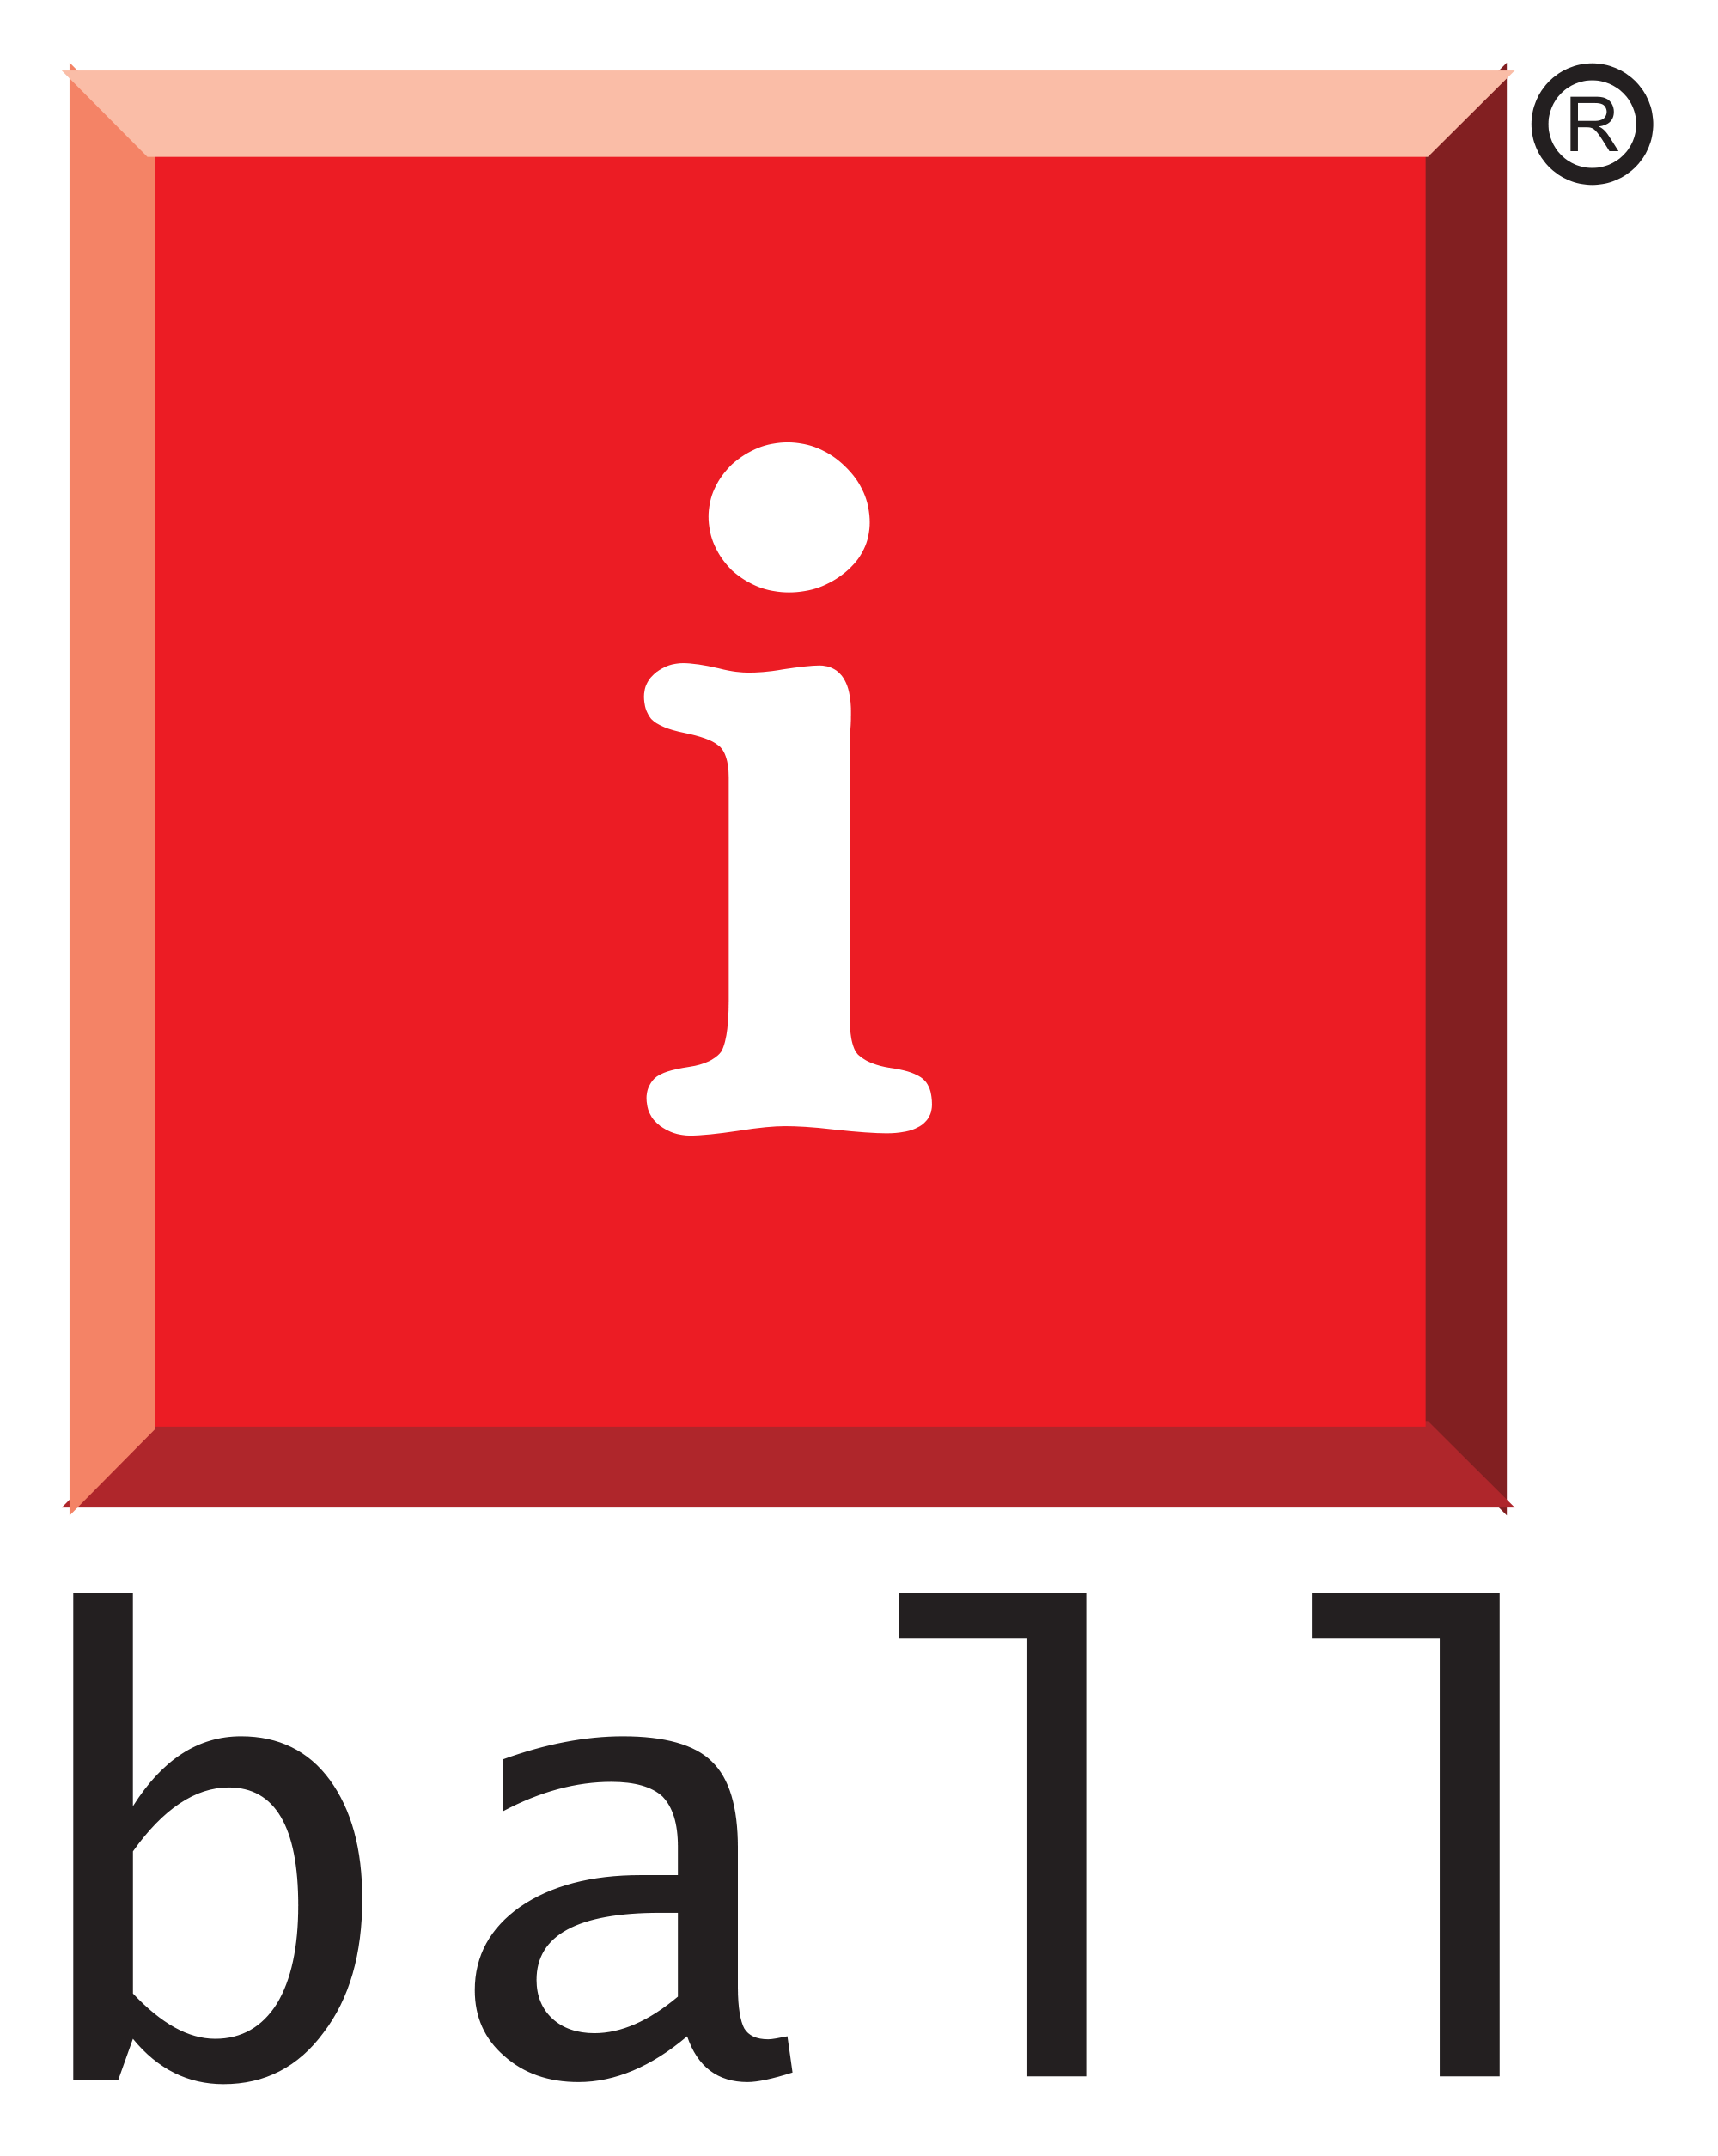 iBall Andi Uddaan Quadcore, Andi5 Stallion Plus Listed on Company Site